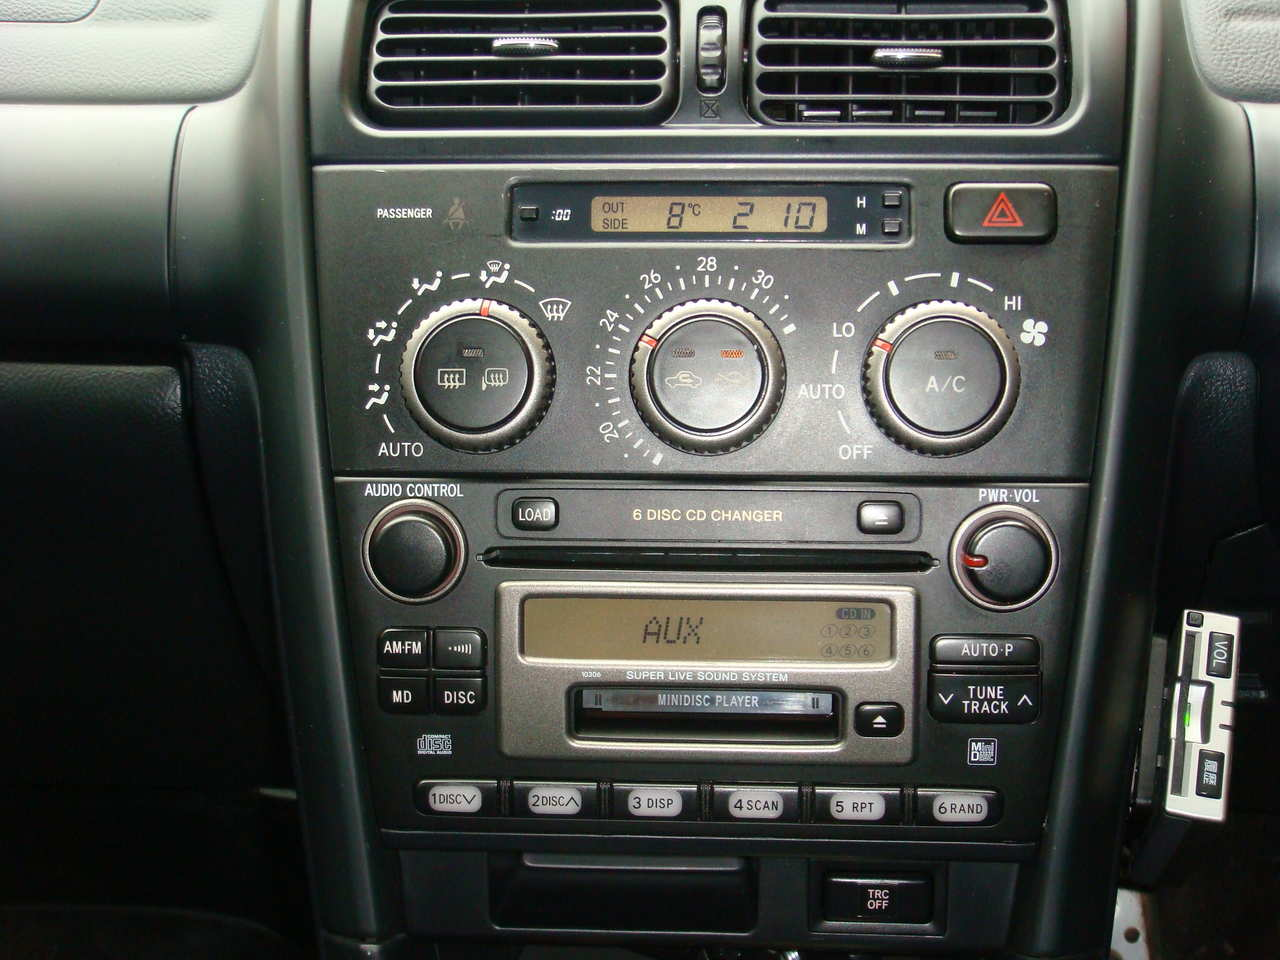 2002 lexus is200 wallpapers, 2.0l., gasoline, fr or rr, automatic